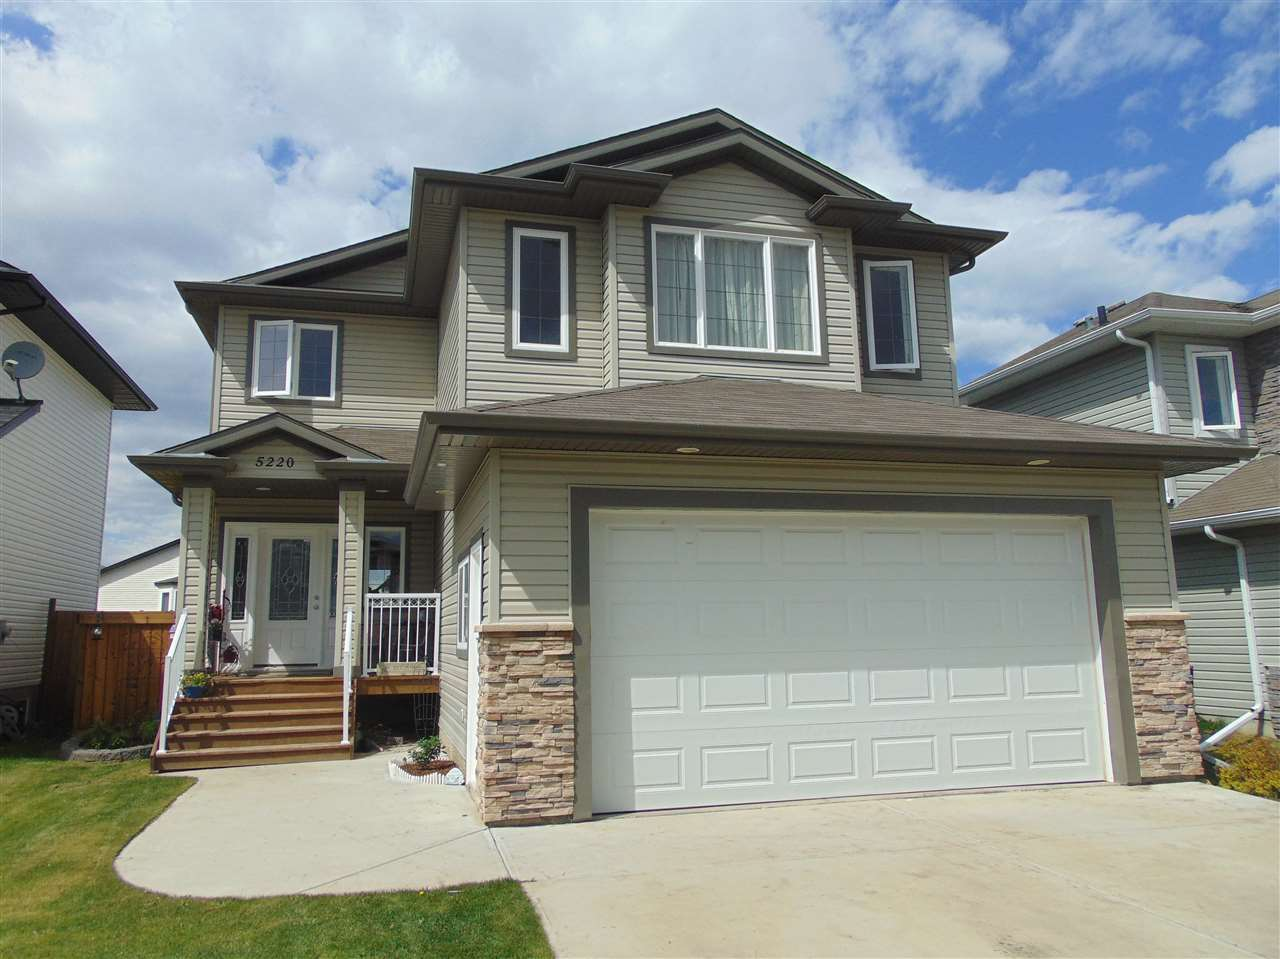 Main Photo: 5220 39 Avenue: Gibbons House for sale : MLS(r) # E4066111